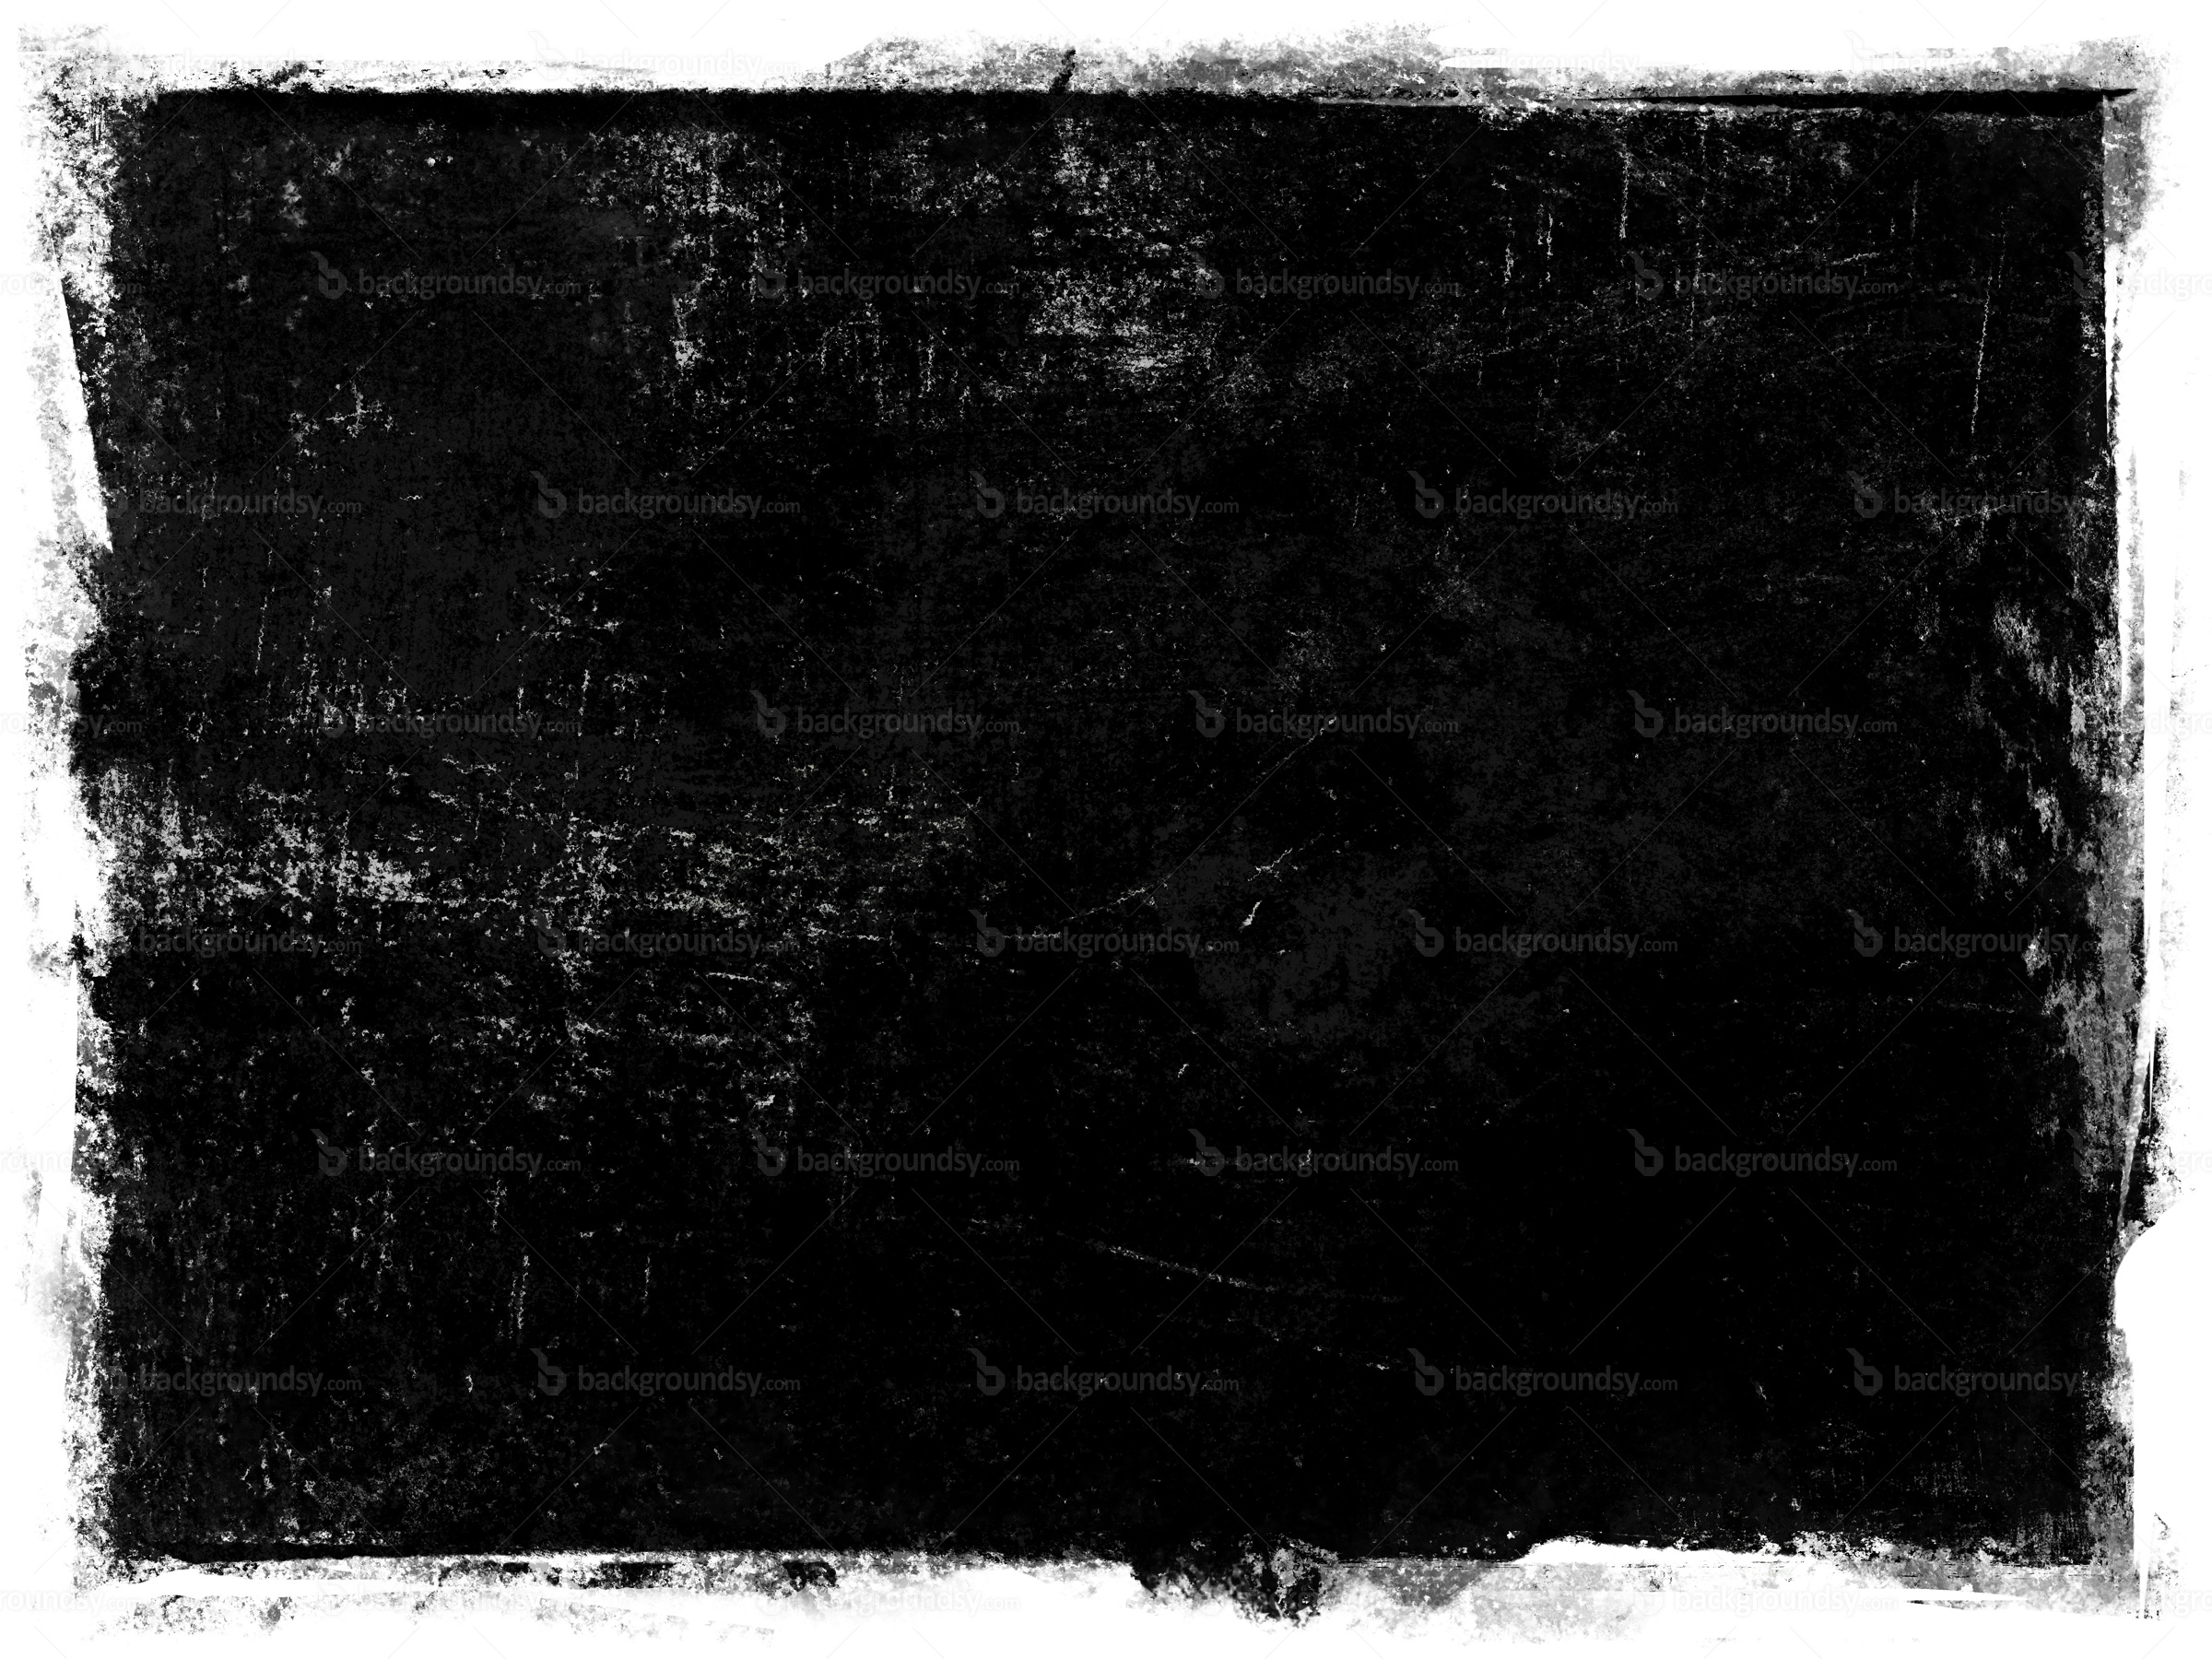 Black grunge background Backgroundsycom 2400x1800